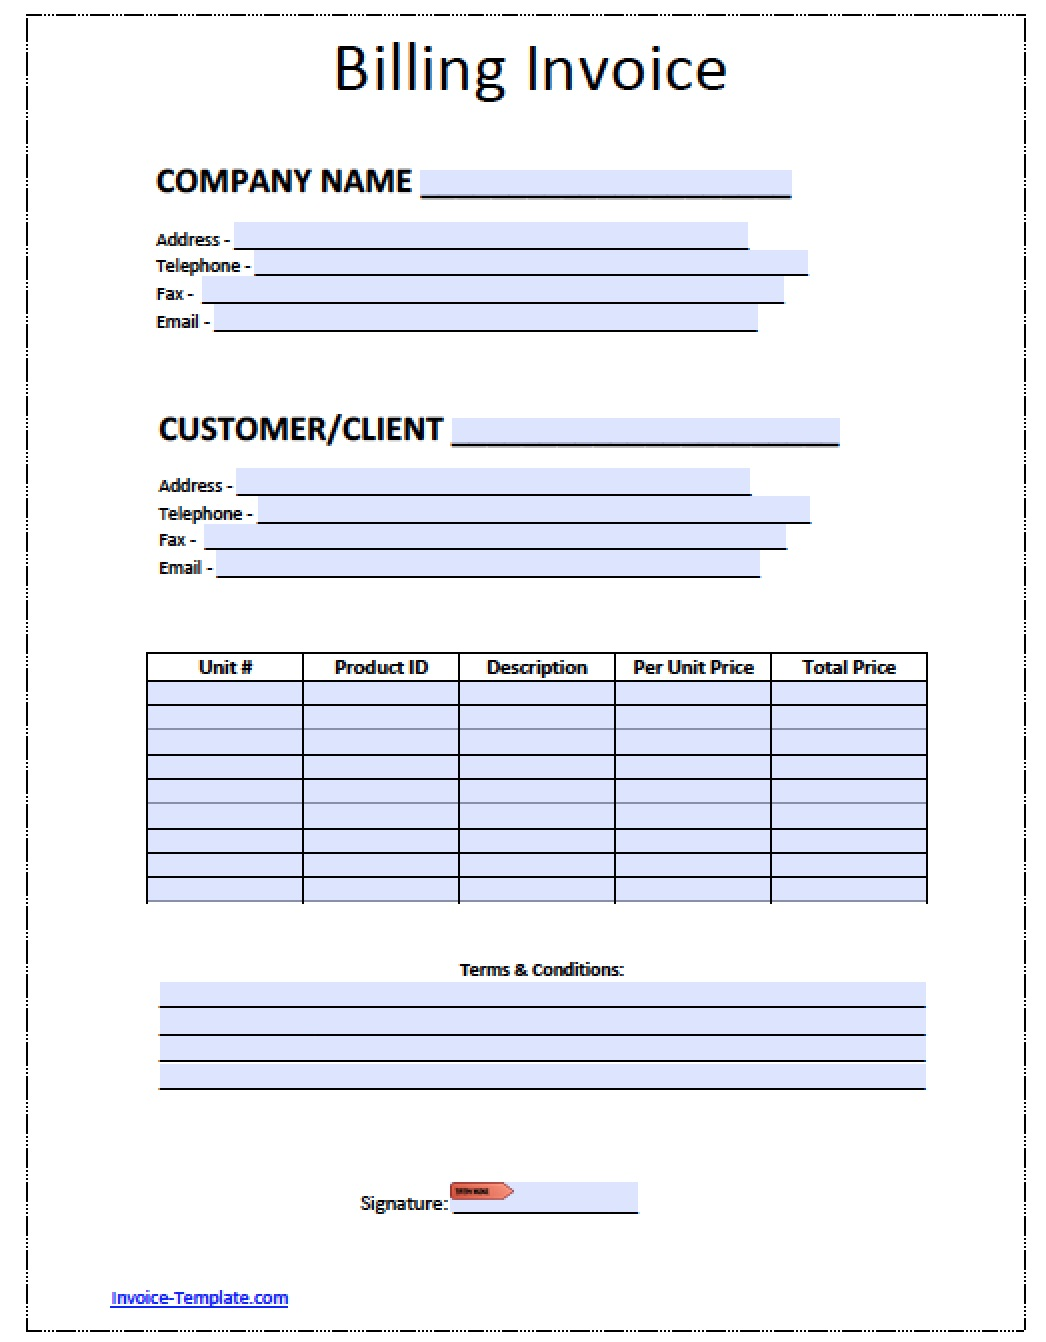 Patriotexpressus  Marvelous Billing Invoice Invoices Faq U Cloudflare Support Billing  With Gorgeous Free Billing Invoice Template  Excel  Pdf  Word Doc  Billing With Charming Simple Invoice Template Uk Also Invoice Template In Word Format In Addition Form Invoice Excel And Crm And Invoicing As Well As Invoice Templates Free Download Additionally Sample Service Invoice Template From Happytomco With Patriotexpressus  Gorgeous Billing Invoice Invoices Faq U Cloudflare Support Billing  With Charming Free Billing Invoice Template  Excel  Pdf  Word Doc  Billing And Marvelous Simple Invoice Template Uk Also Invoice Template In Word Format In Addition Form Invoice Excel From Happytomco